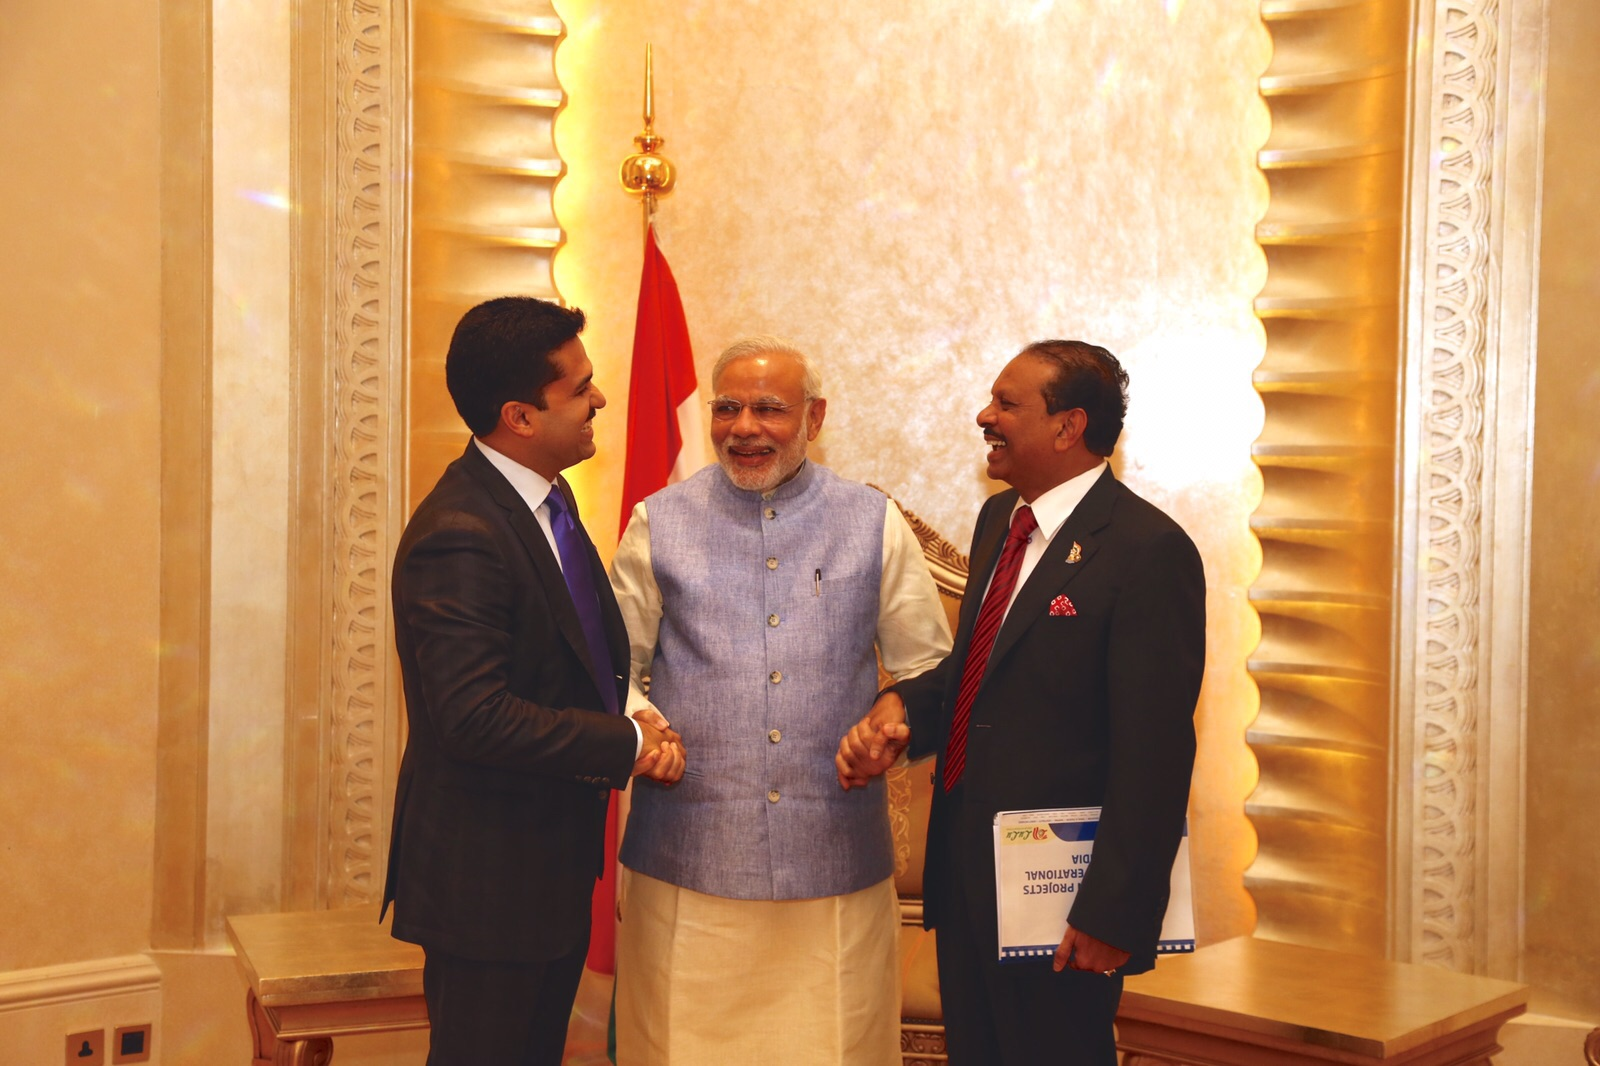 With Shri Narendra Modi, 14th Prime Minister of the Republic of India